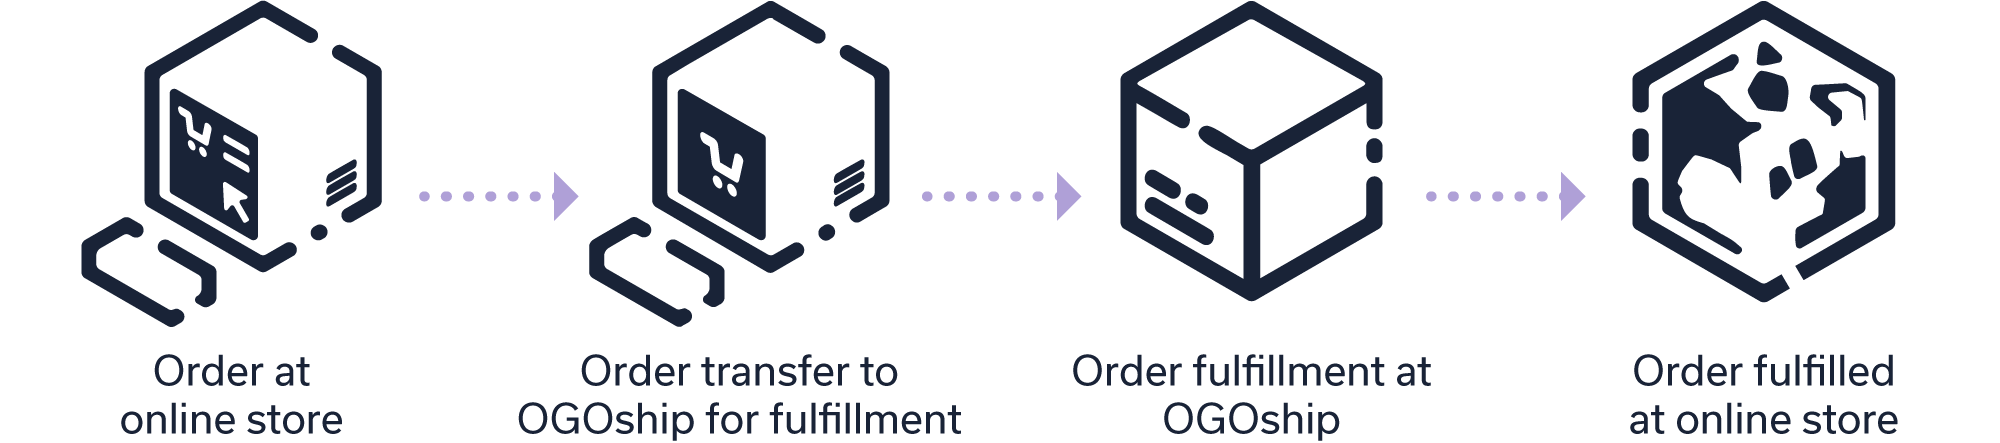 ogoship-order-fulfillment